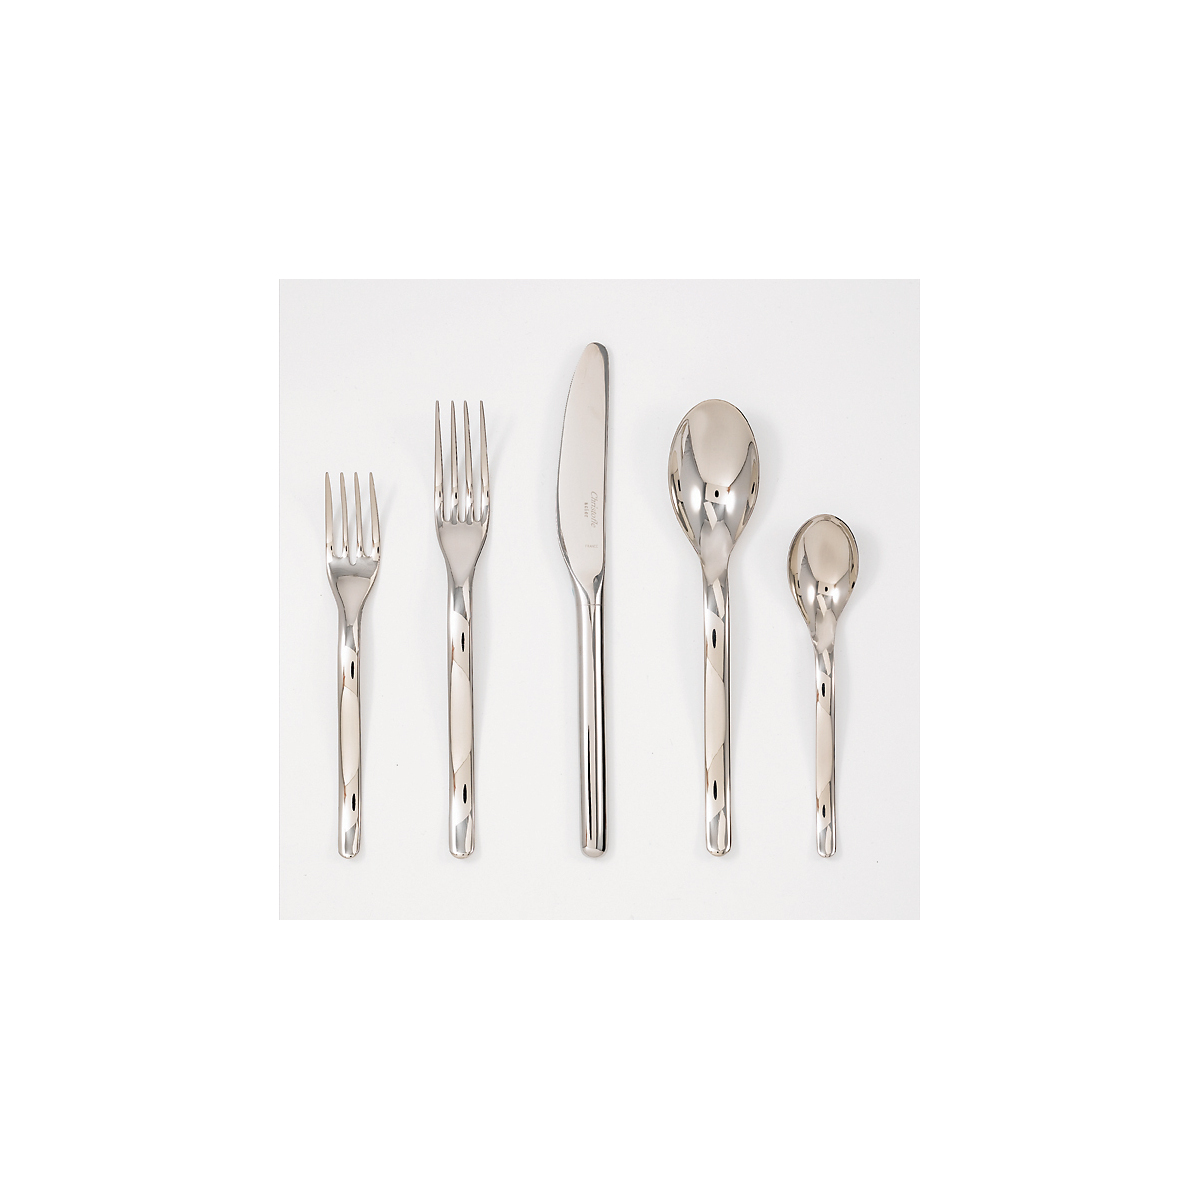 Christofle Tenere Stainless Flatware & Christofle Tenere Stainless Flatware | Gump\u0027s